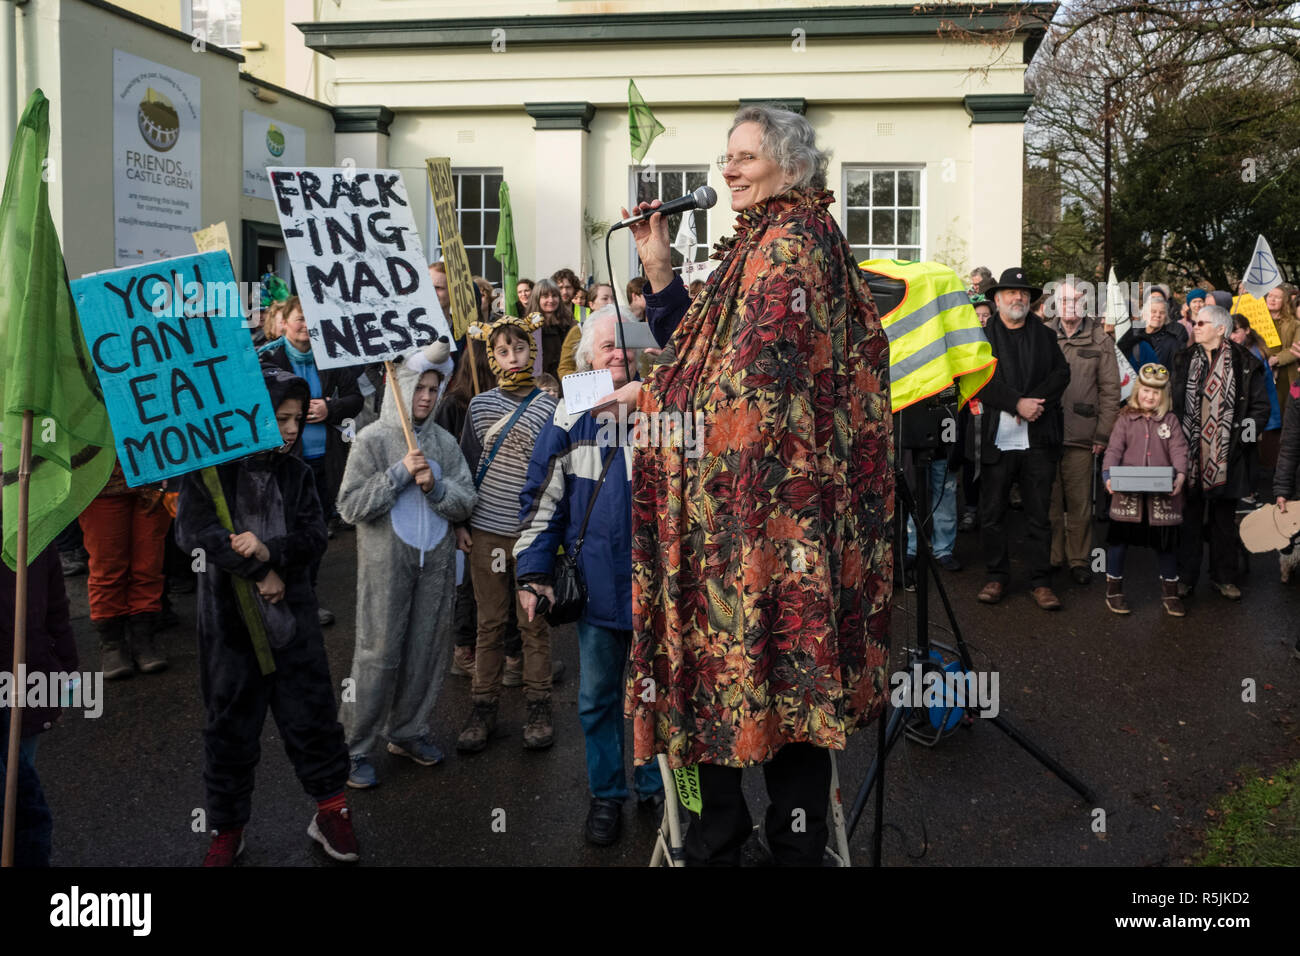 Hereford, UK. 1st December, 2018. Cathy Monkley, climate activist, speaking at a demonstration by he newly formed local branch of the Extinction Rebellion movement in this old cathedral city . Credit: Alex Ramsay/Alamy Live News - Stock Image